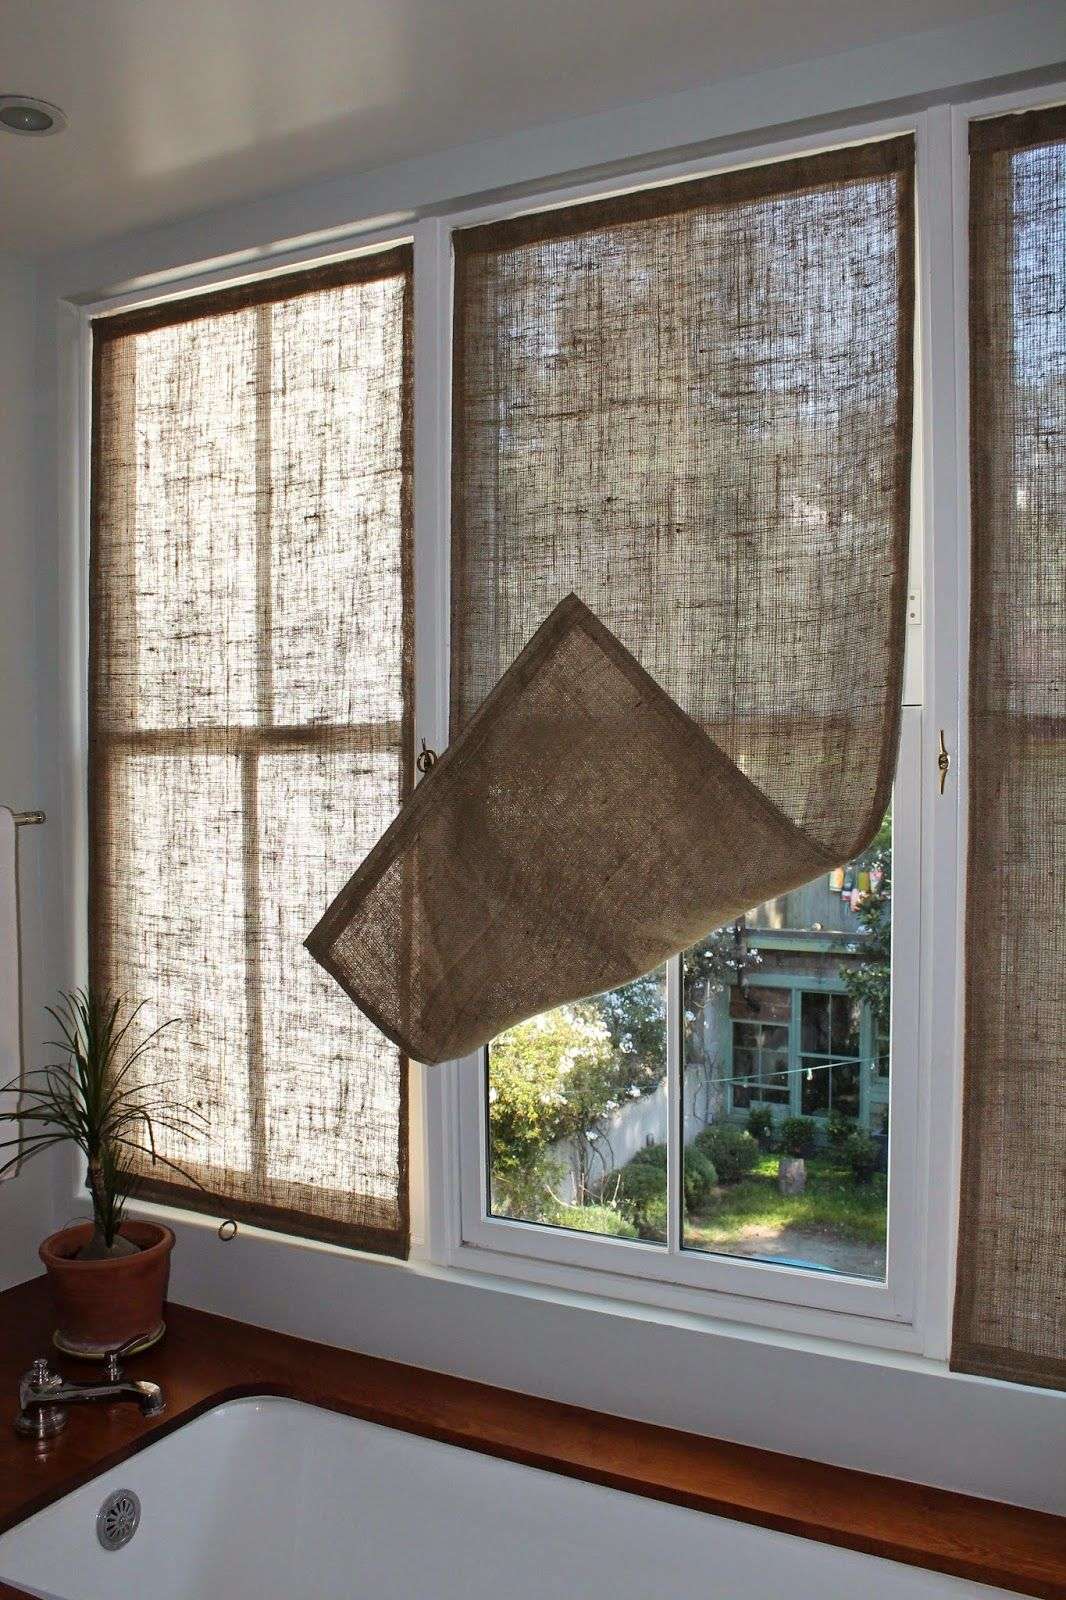 Latest window coverings 2018  last week i made some new burlap window coverings for the master